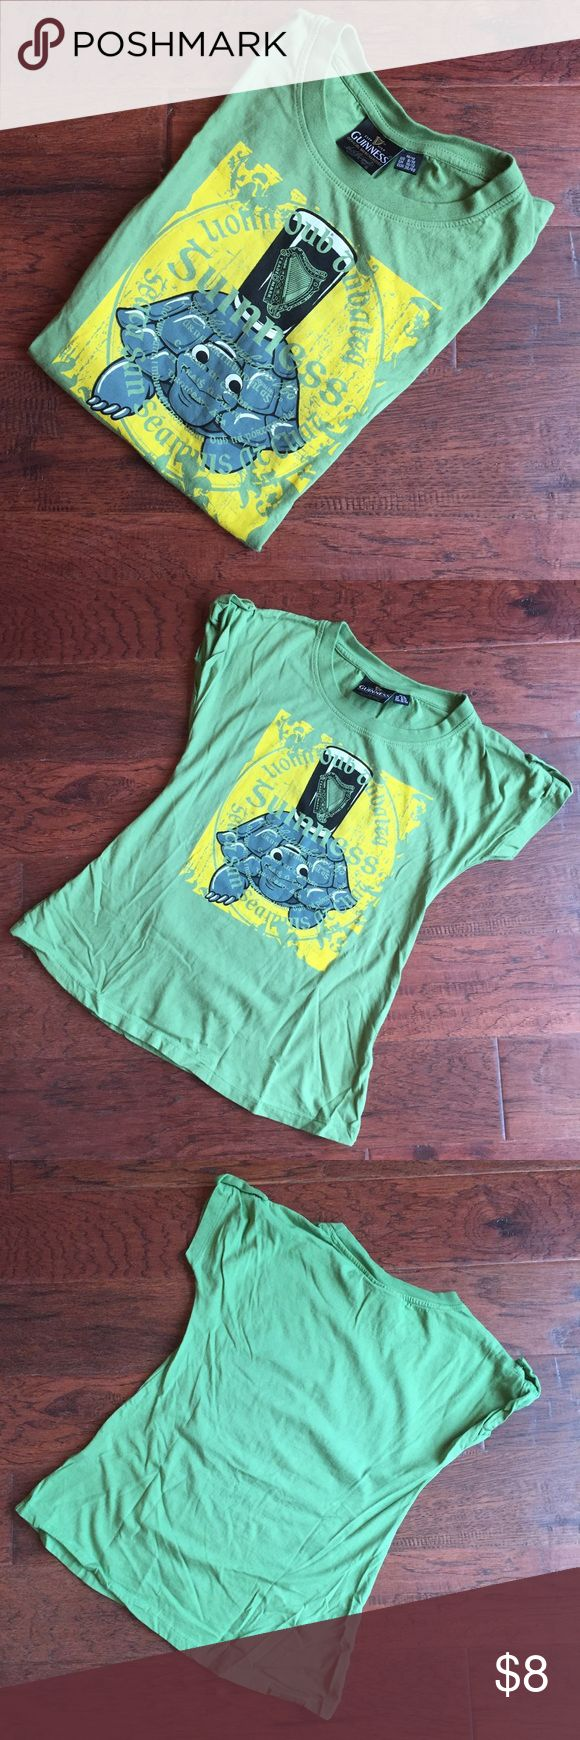 Guinness Tee with Turtle Guinness - Tee - Green with Turtle - Short Sleeves with Button up option - Worn Once - Size 8/10 Girls - Fits like an XS Juniors of XL Girls - Smoke Free Home Shirts & Tops Tees - Short Sleeve